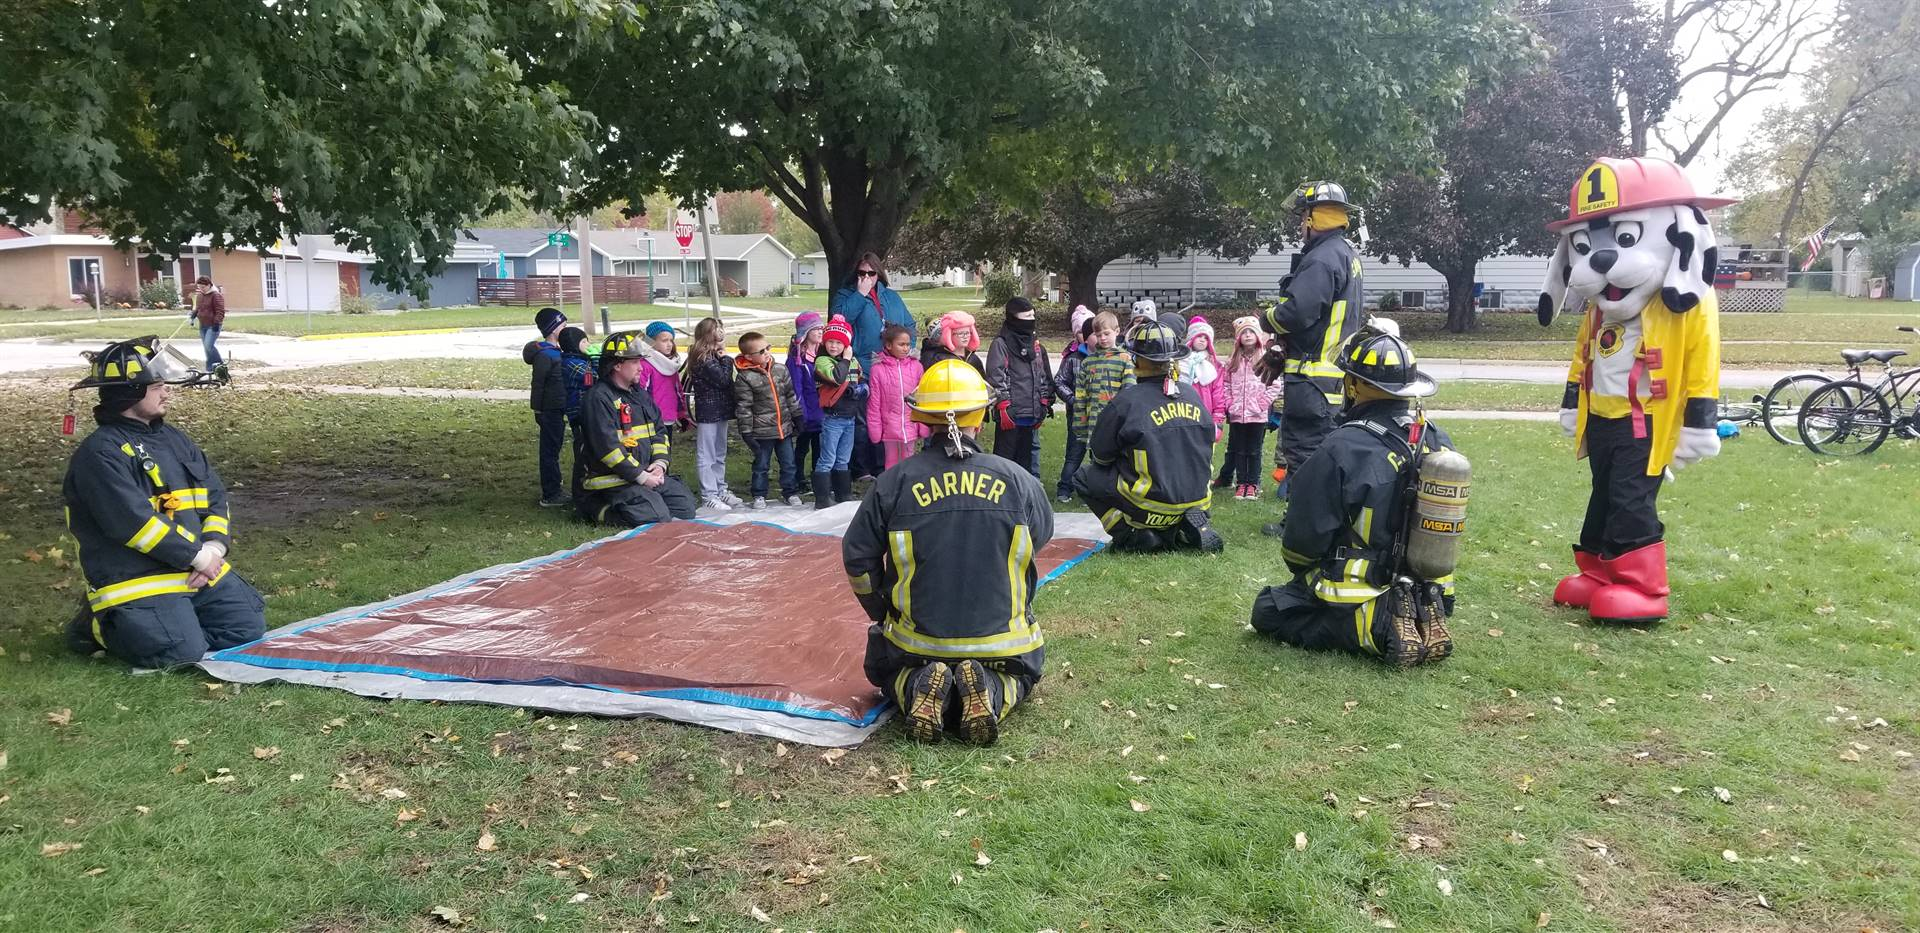 Students outside by a tree watching a demonstration on fire safety